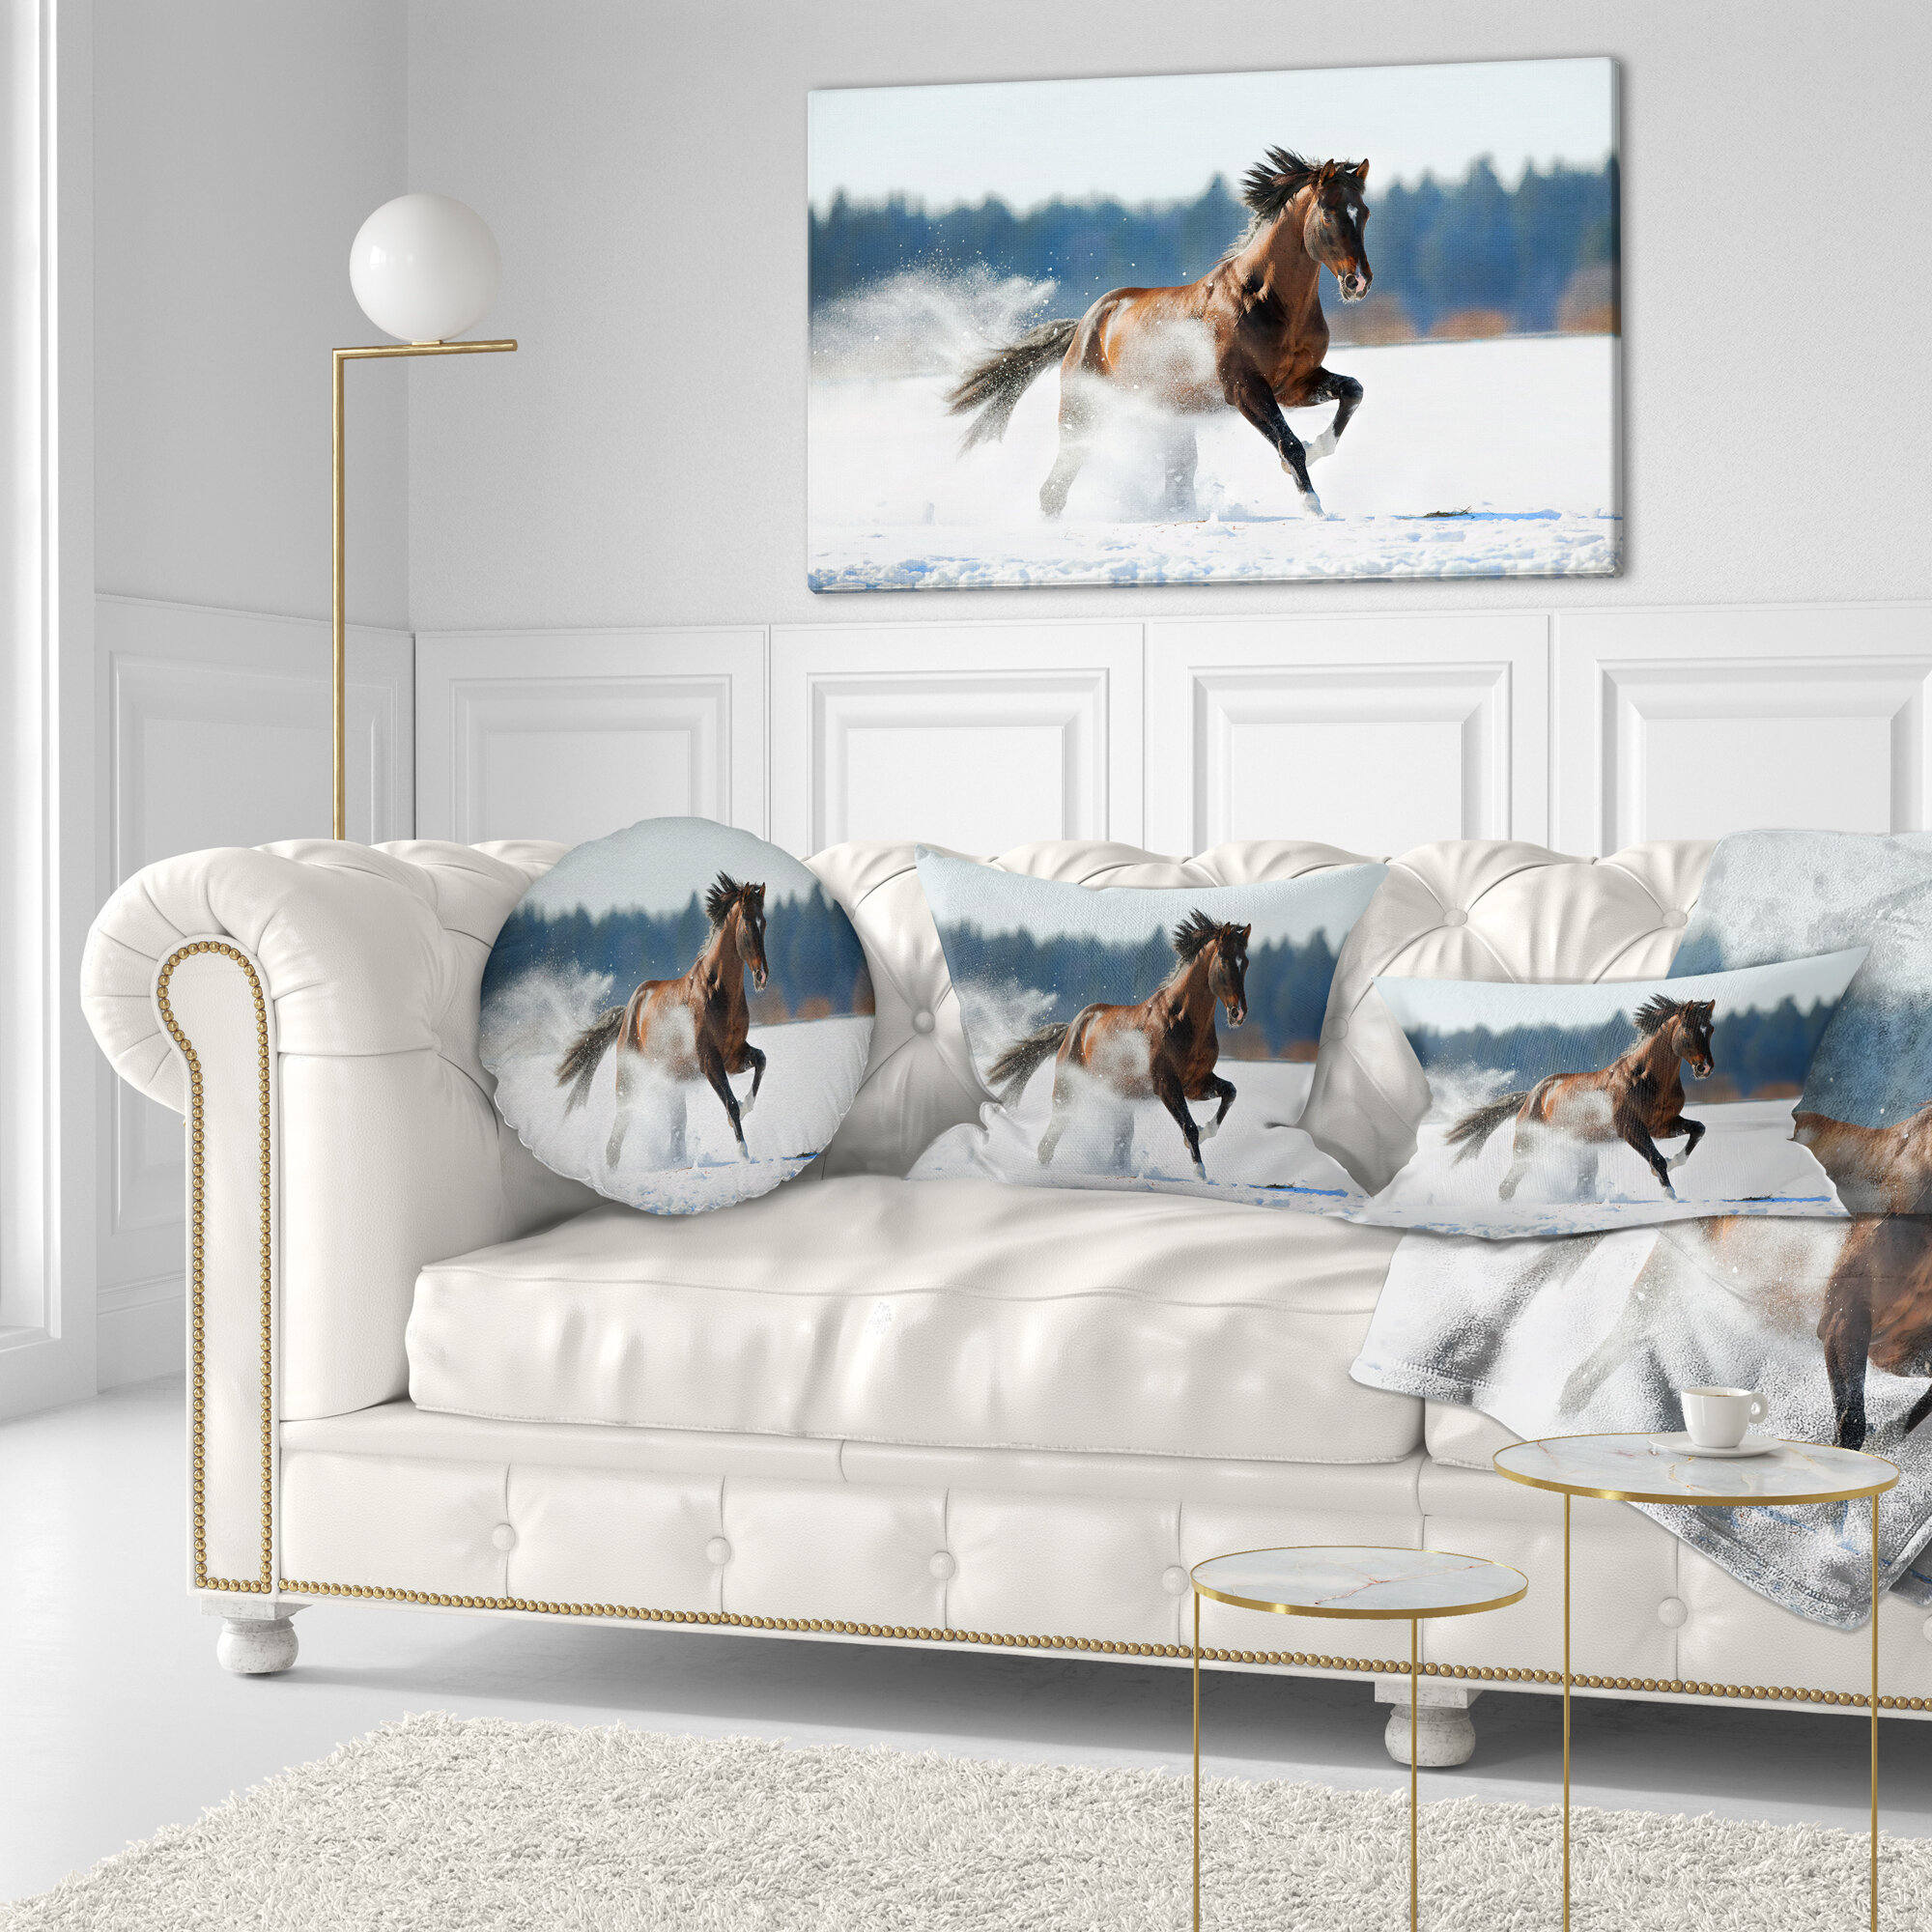 East Urban Home Designart Horse Running In Winter Landscape Photography